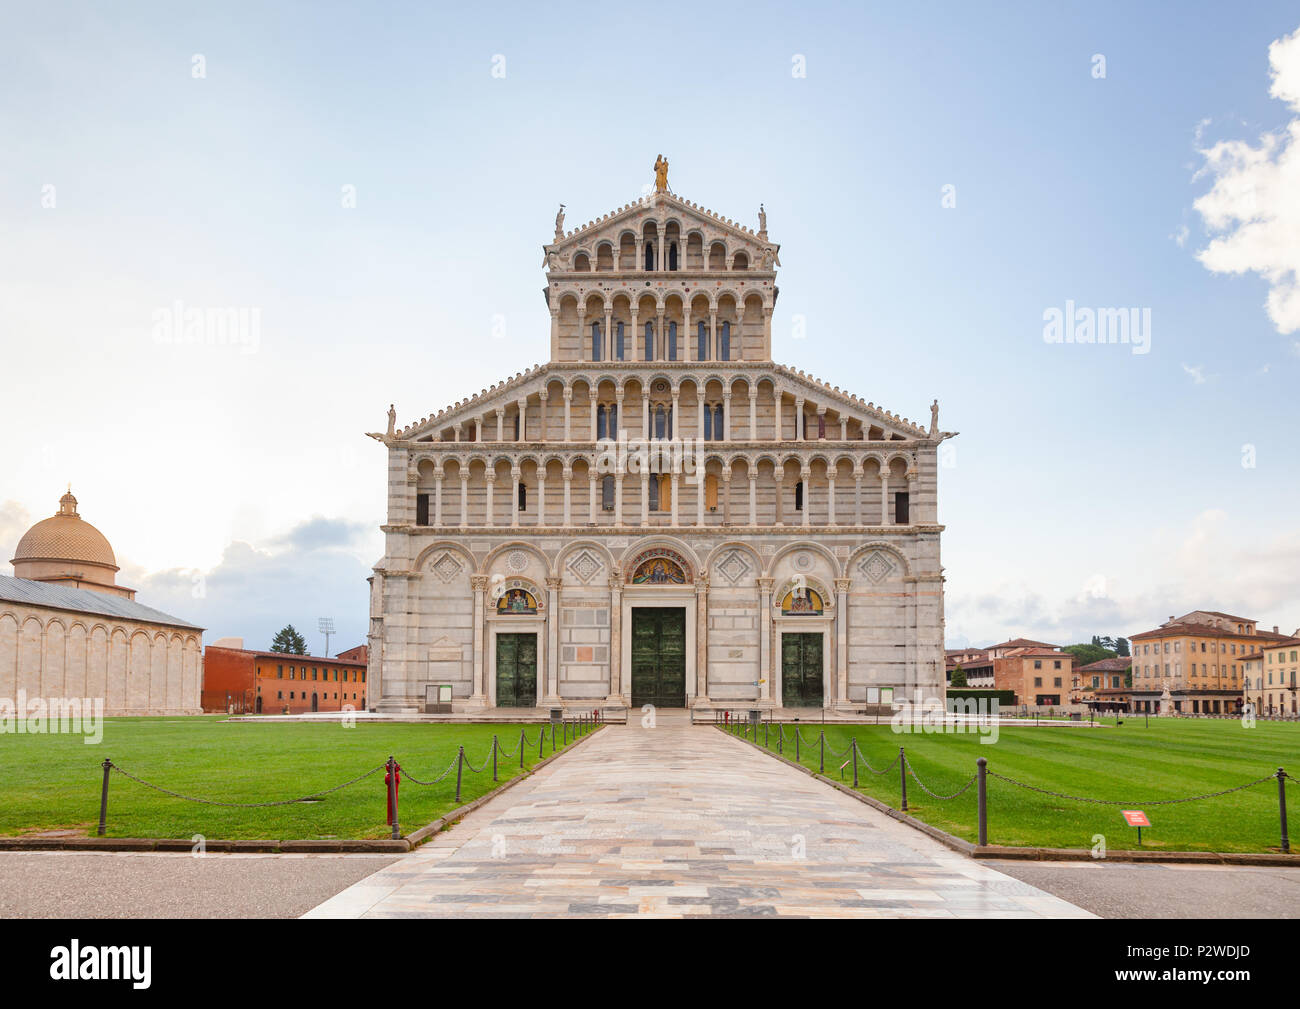 Pisan Romanesque facade of medieval Roman Catholic Pisa Cathedral at Piazza dei Miracoli (Square of Miracles) or Piazza del Duomo (Cathedral Square),  - Stock Image